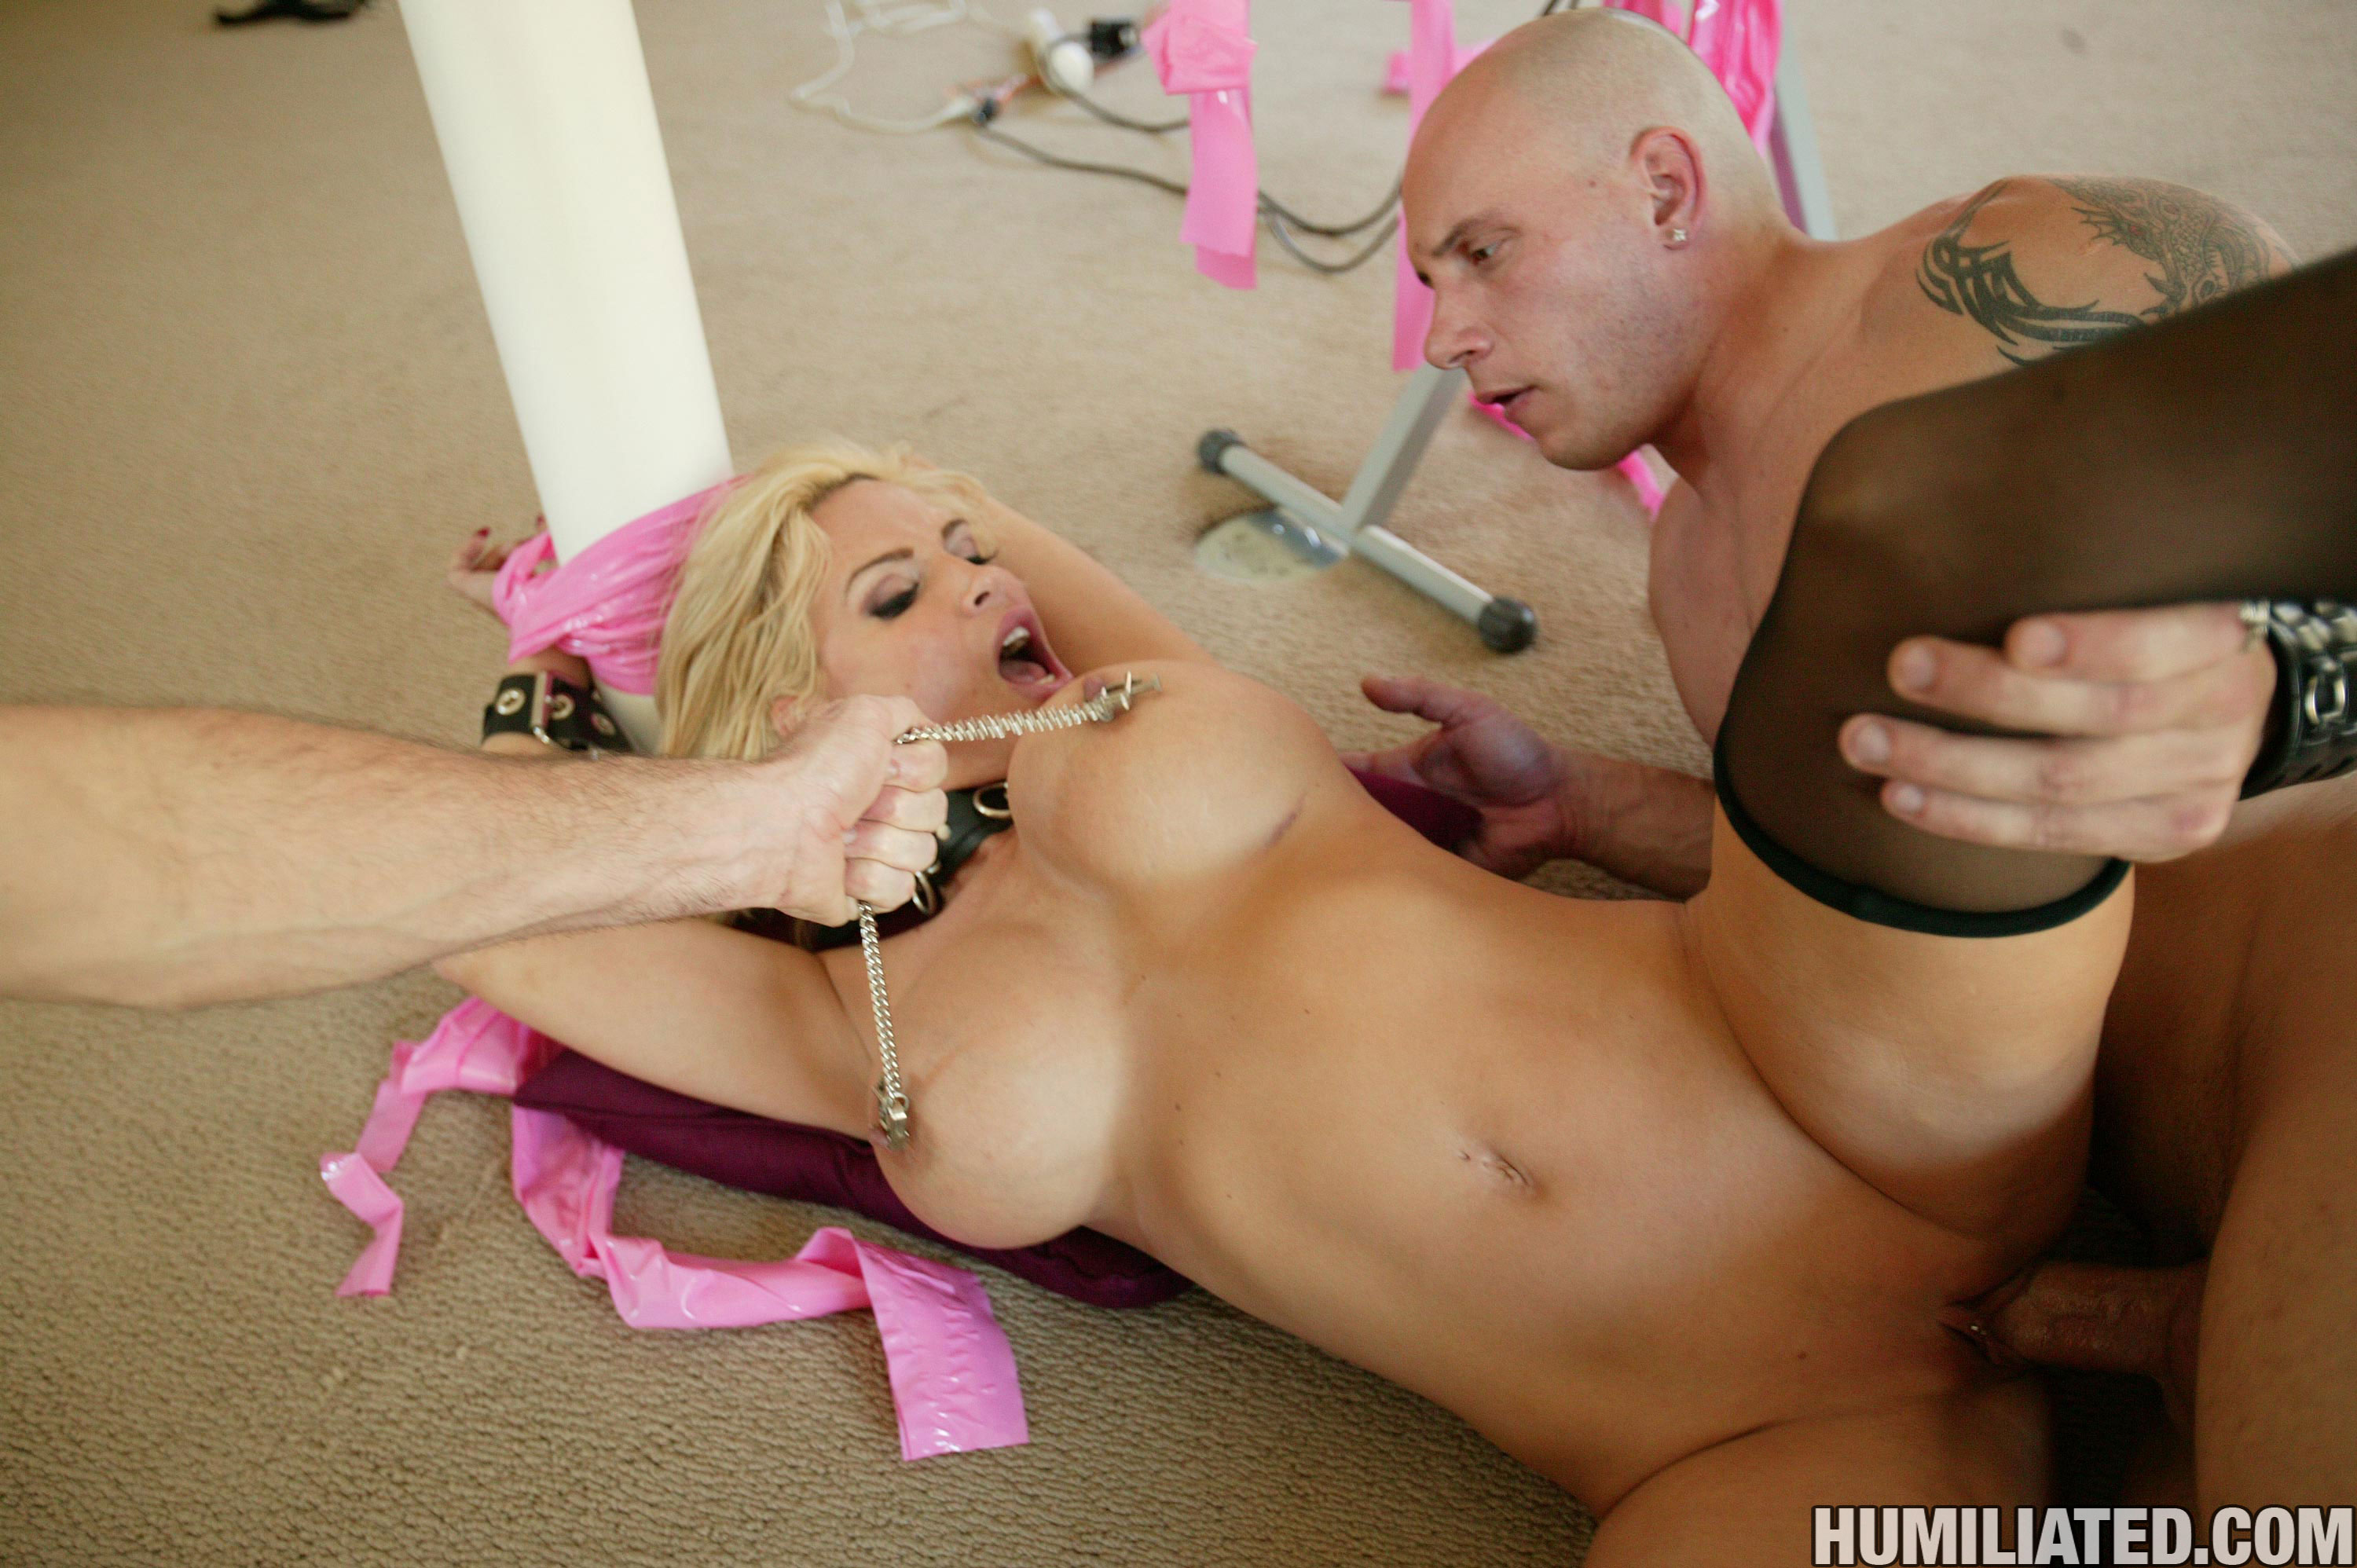 Milf humiliation galleries